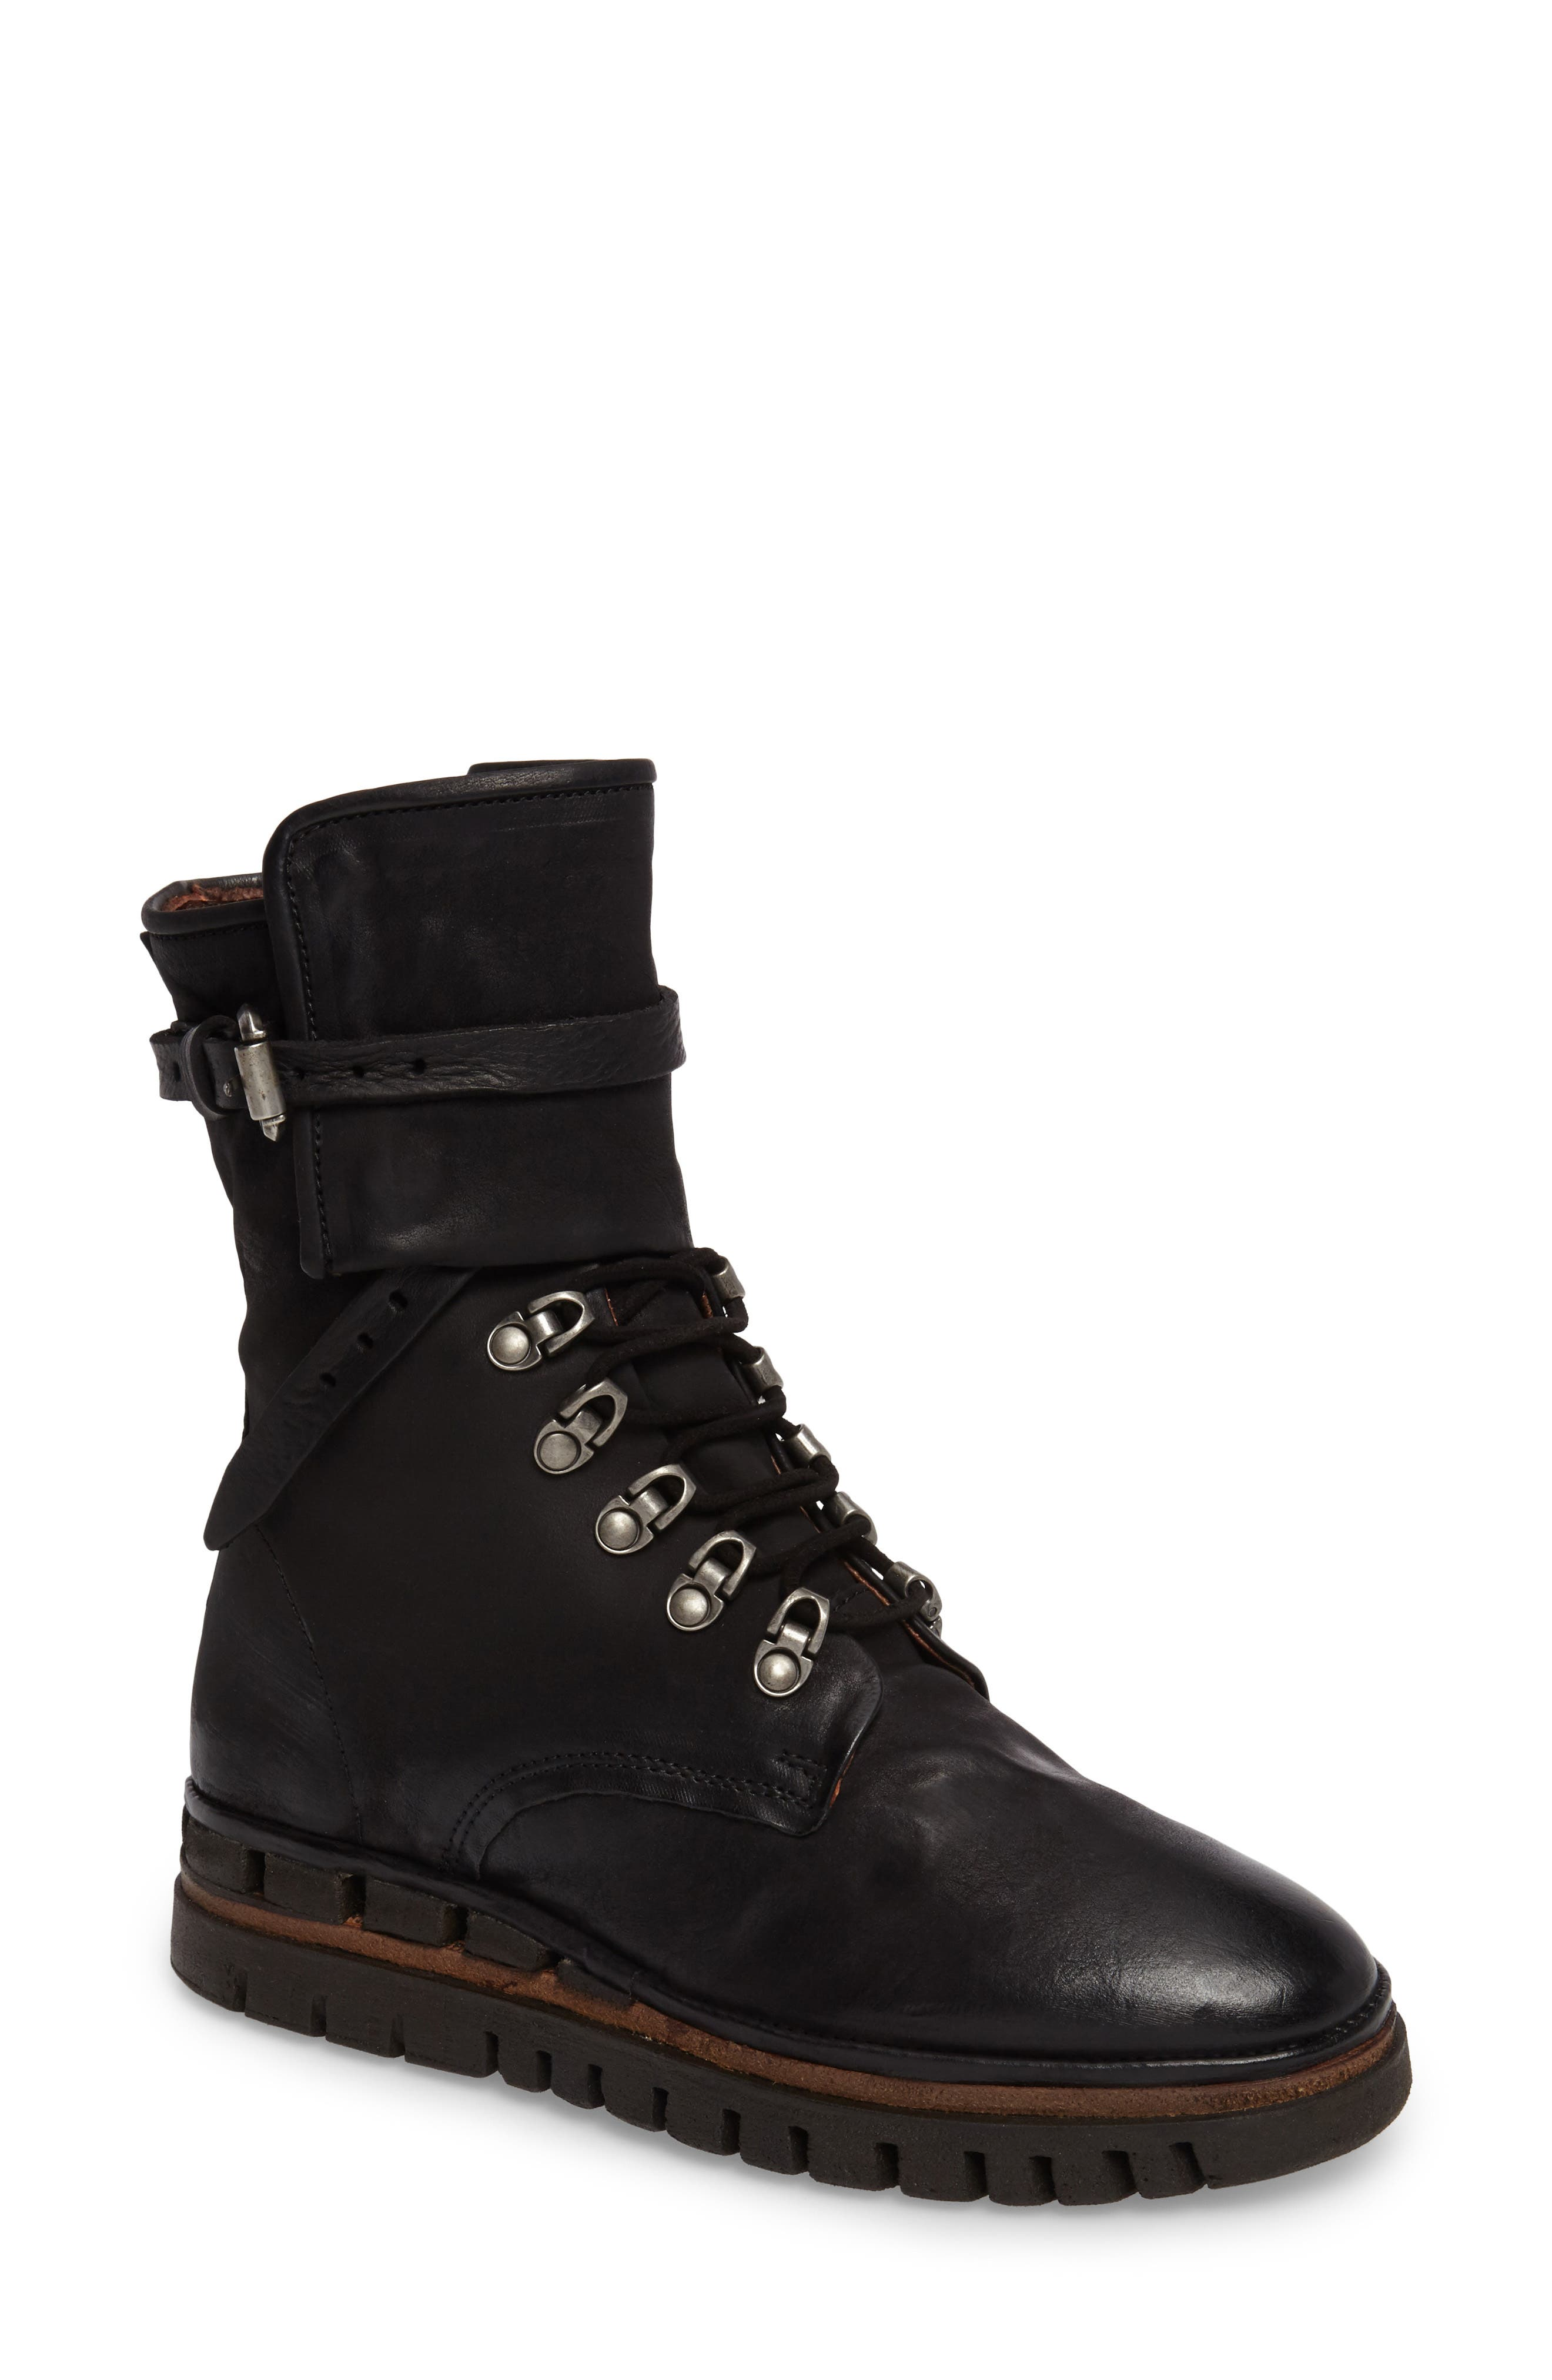 A.S. 98 Pike Boot,                             Main thumbnail 1, color,                             001